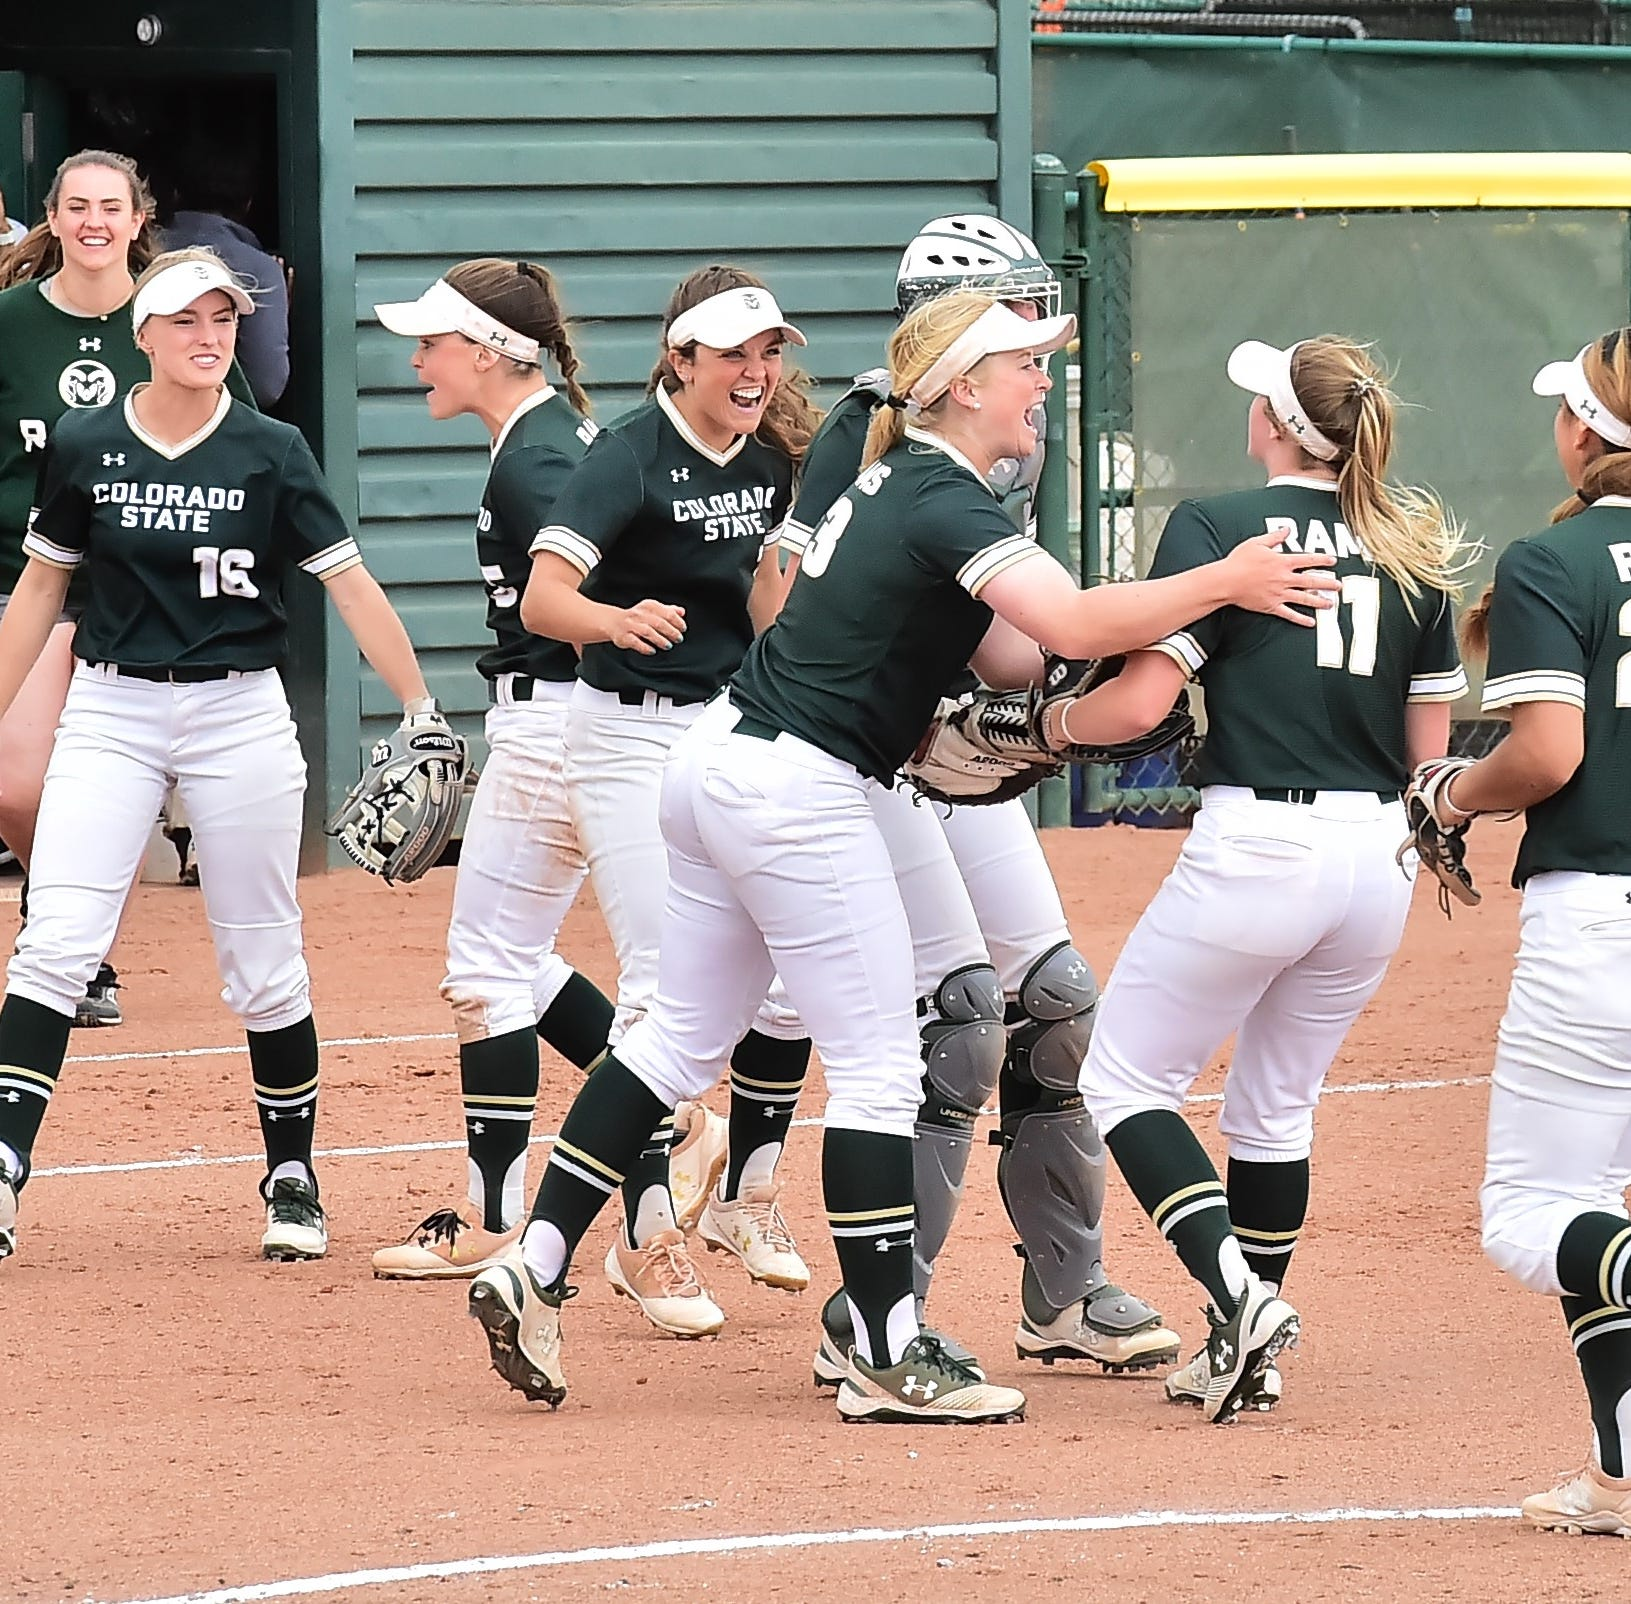 CSU softball wins Mountain West title, qualifies for NCAA Regionals